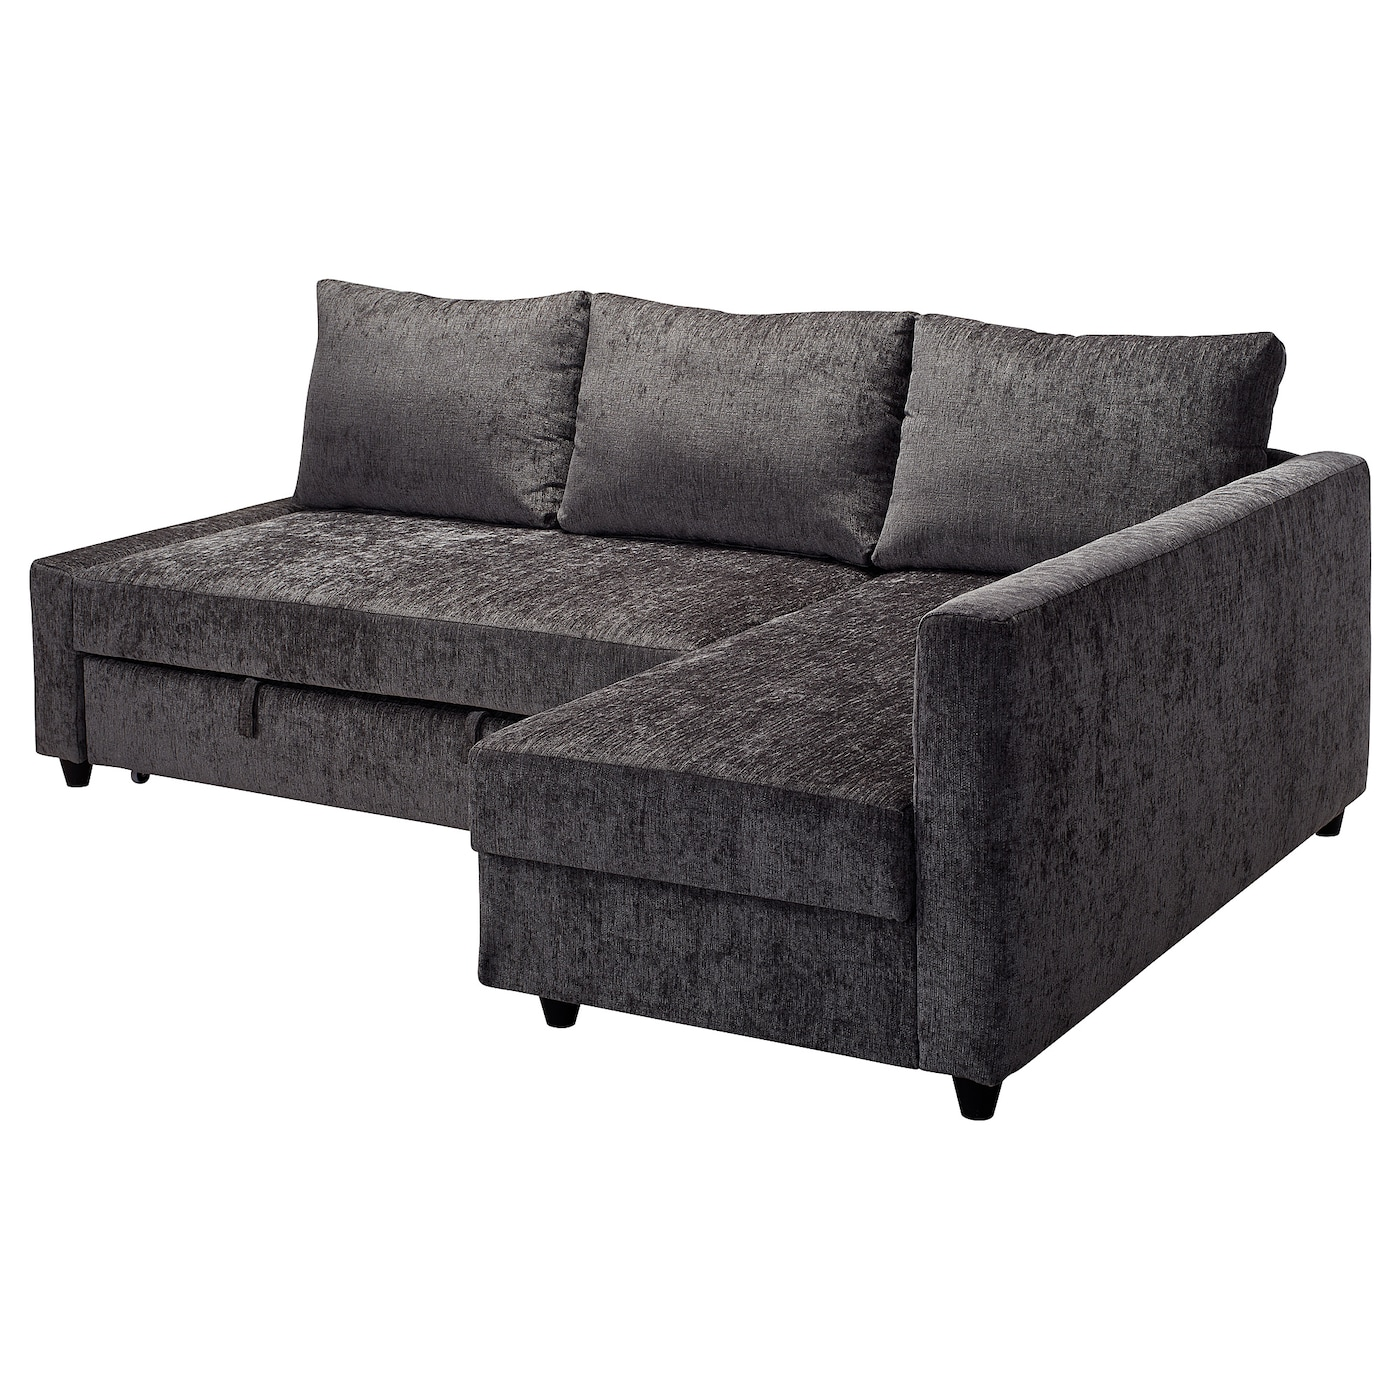 Friheten corner sofa bed with storage dark grey ikea for Chaise bed sofa